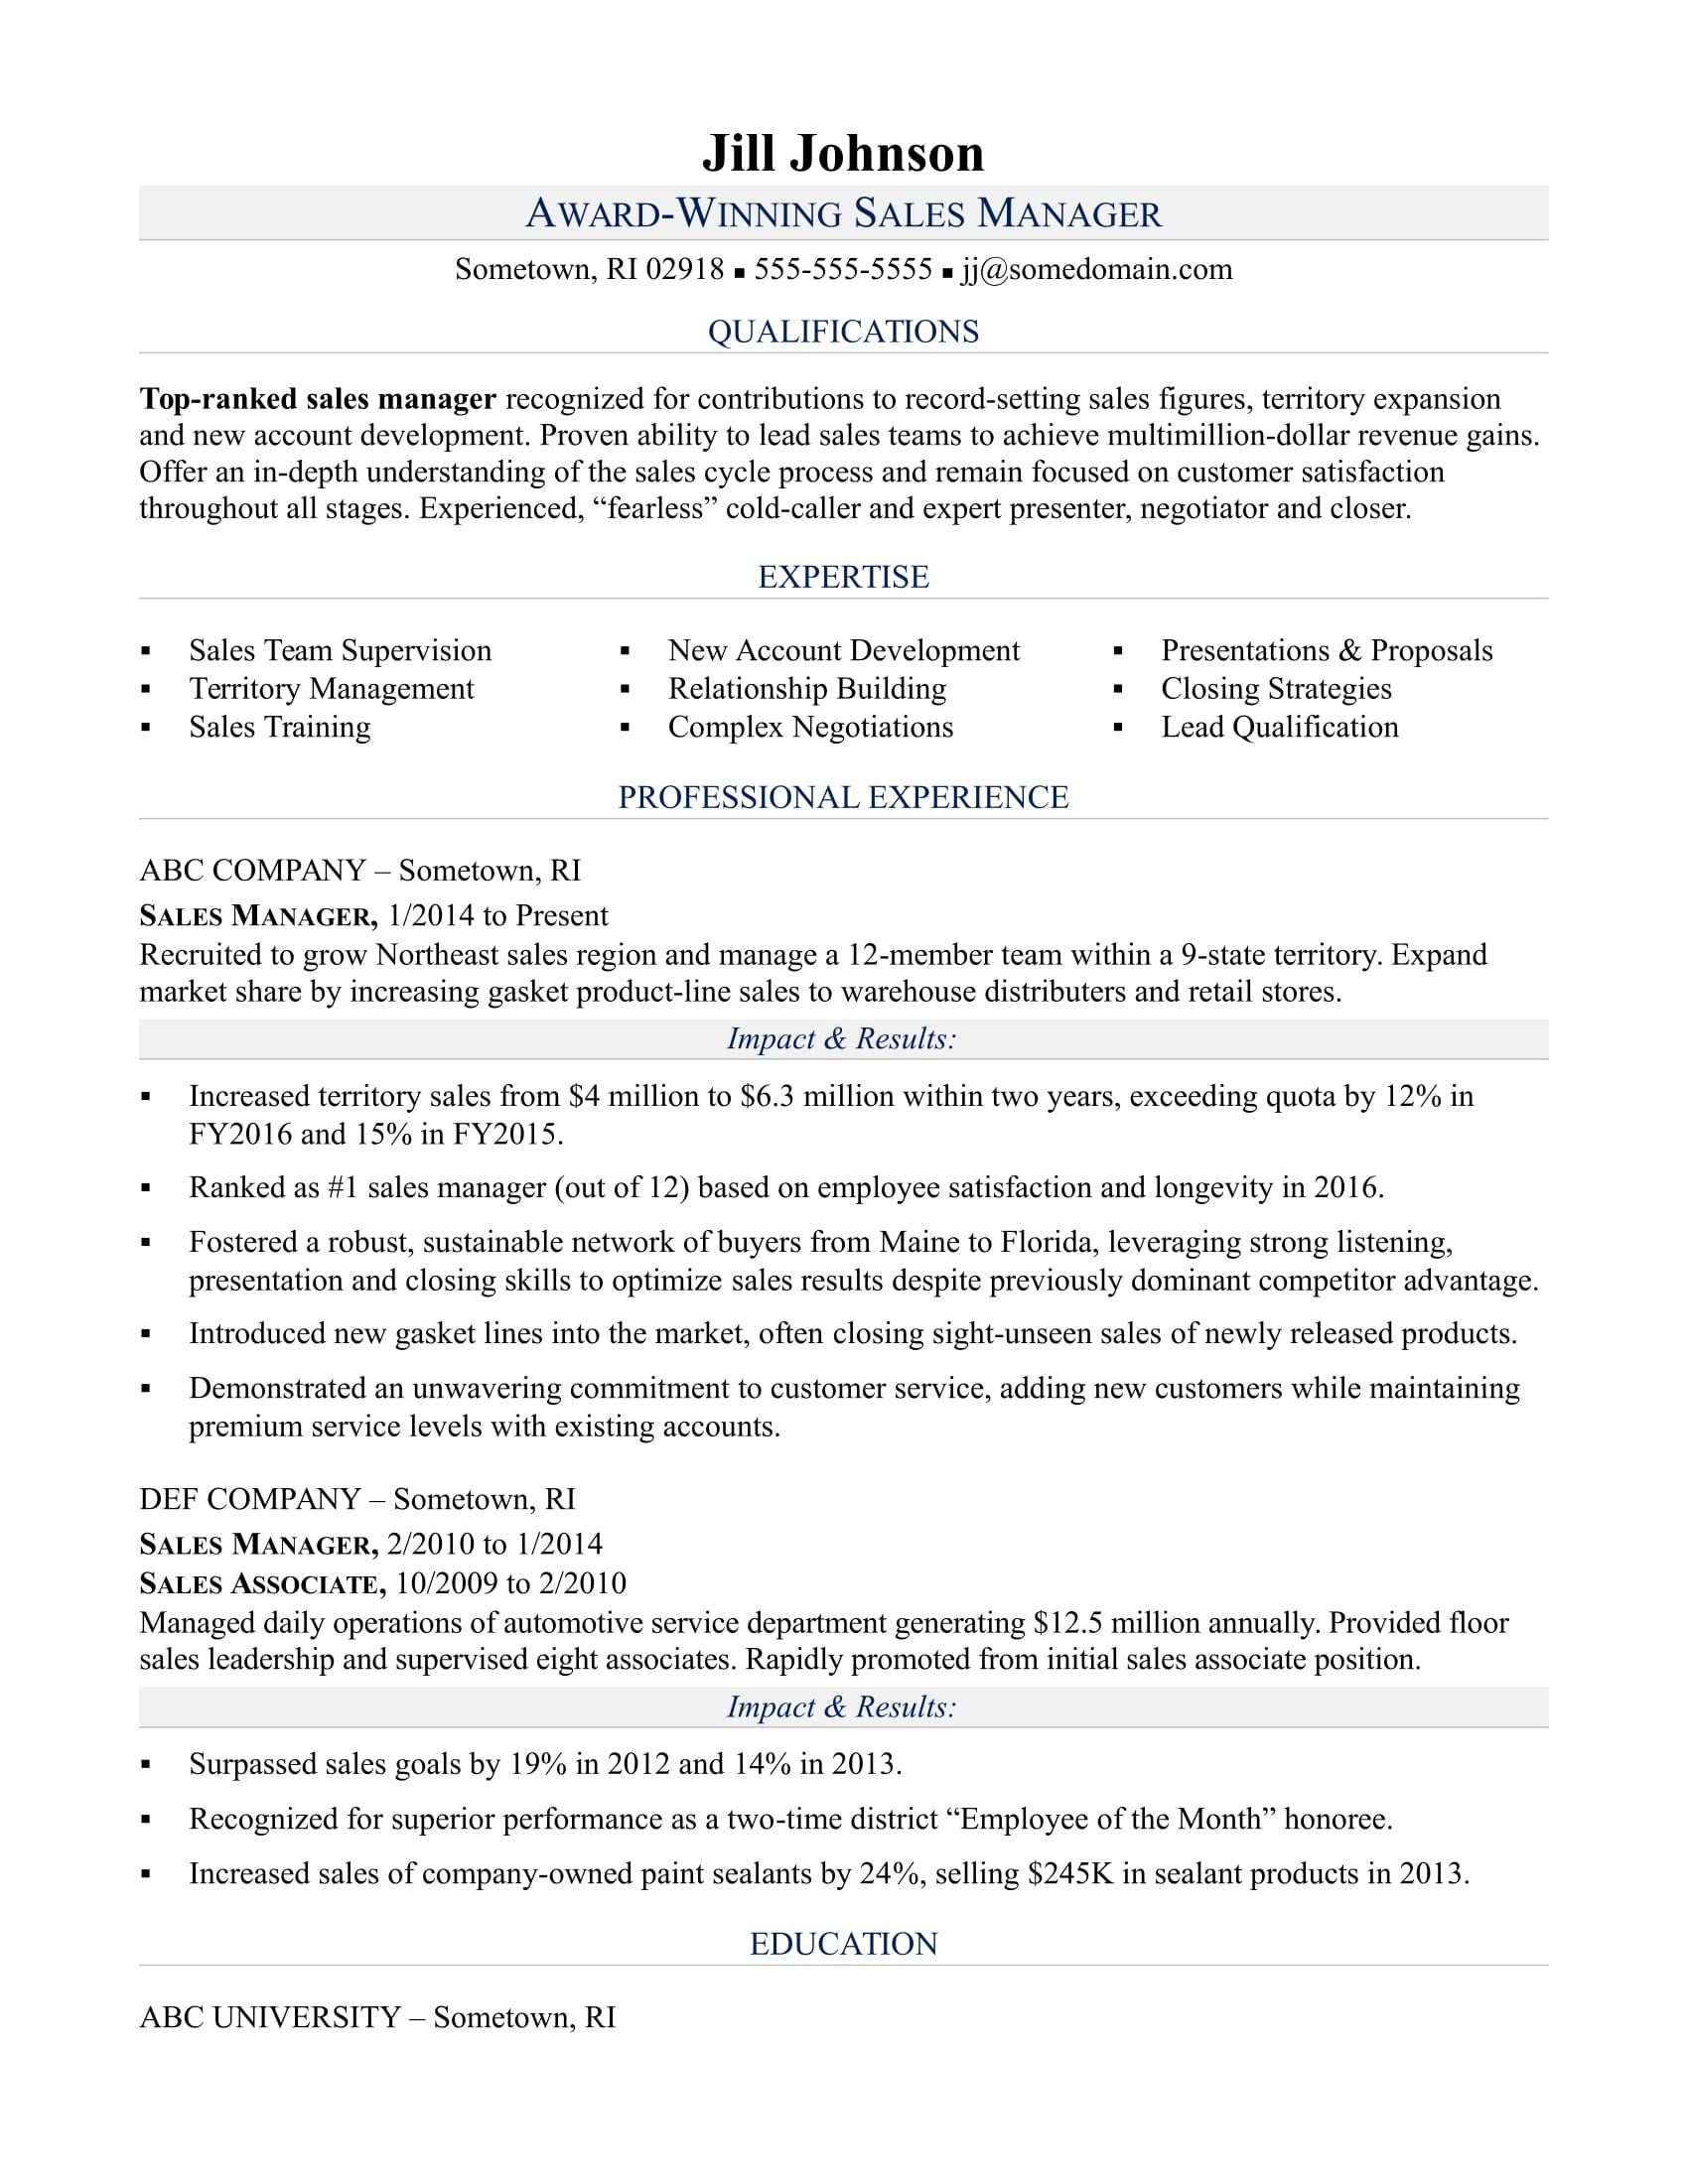 Store Clerk Sample Resume Sample Resume For A Sales Manager  Cv  Pinterest  Sample Resume .